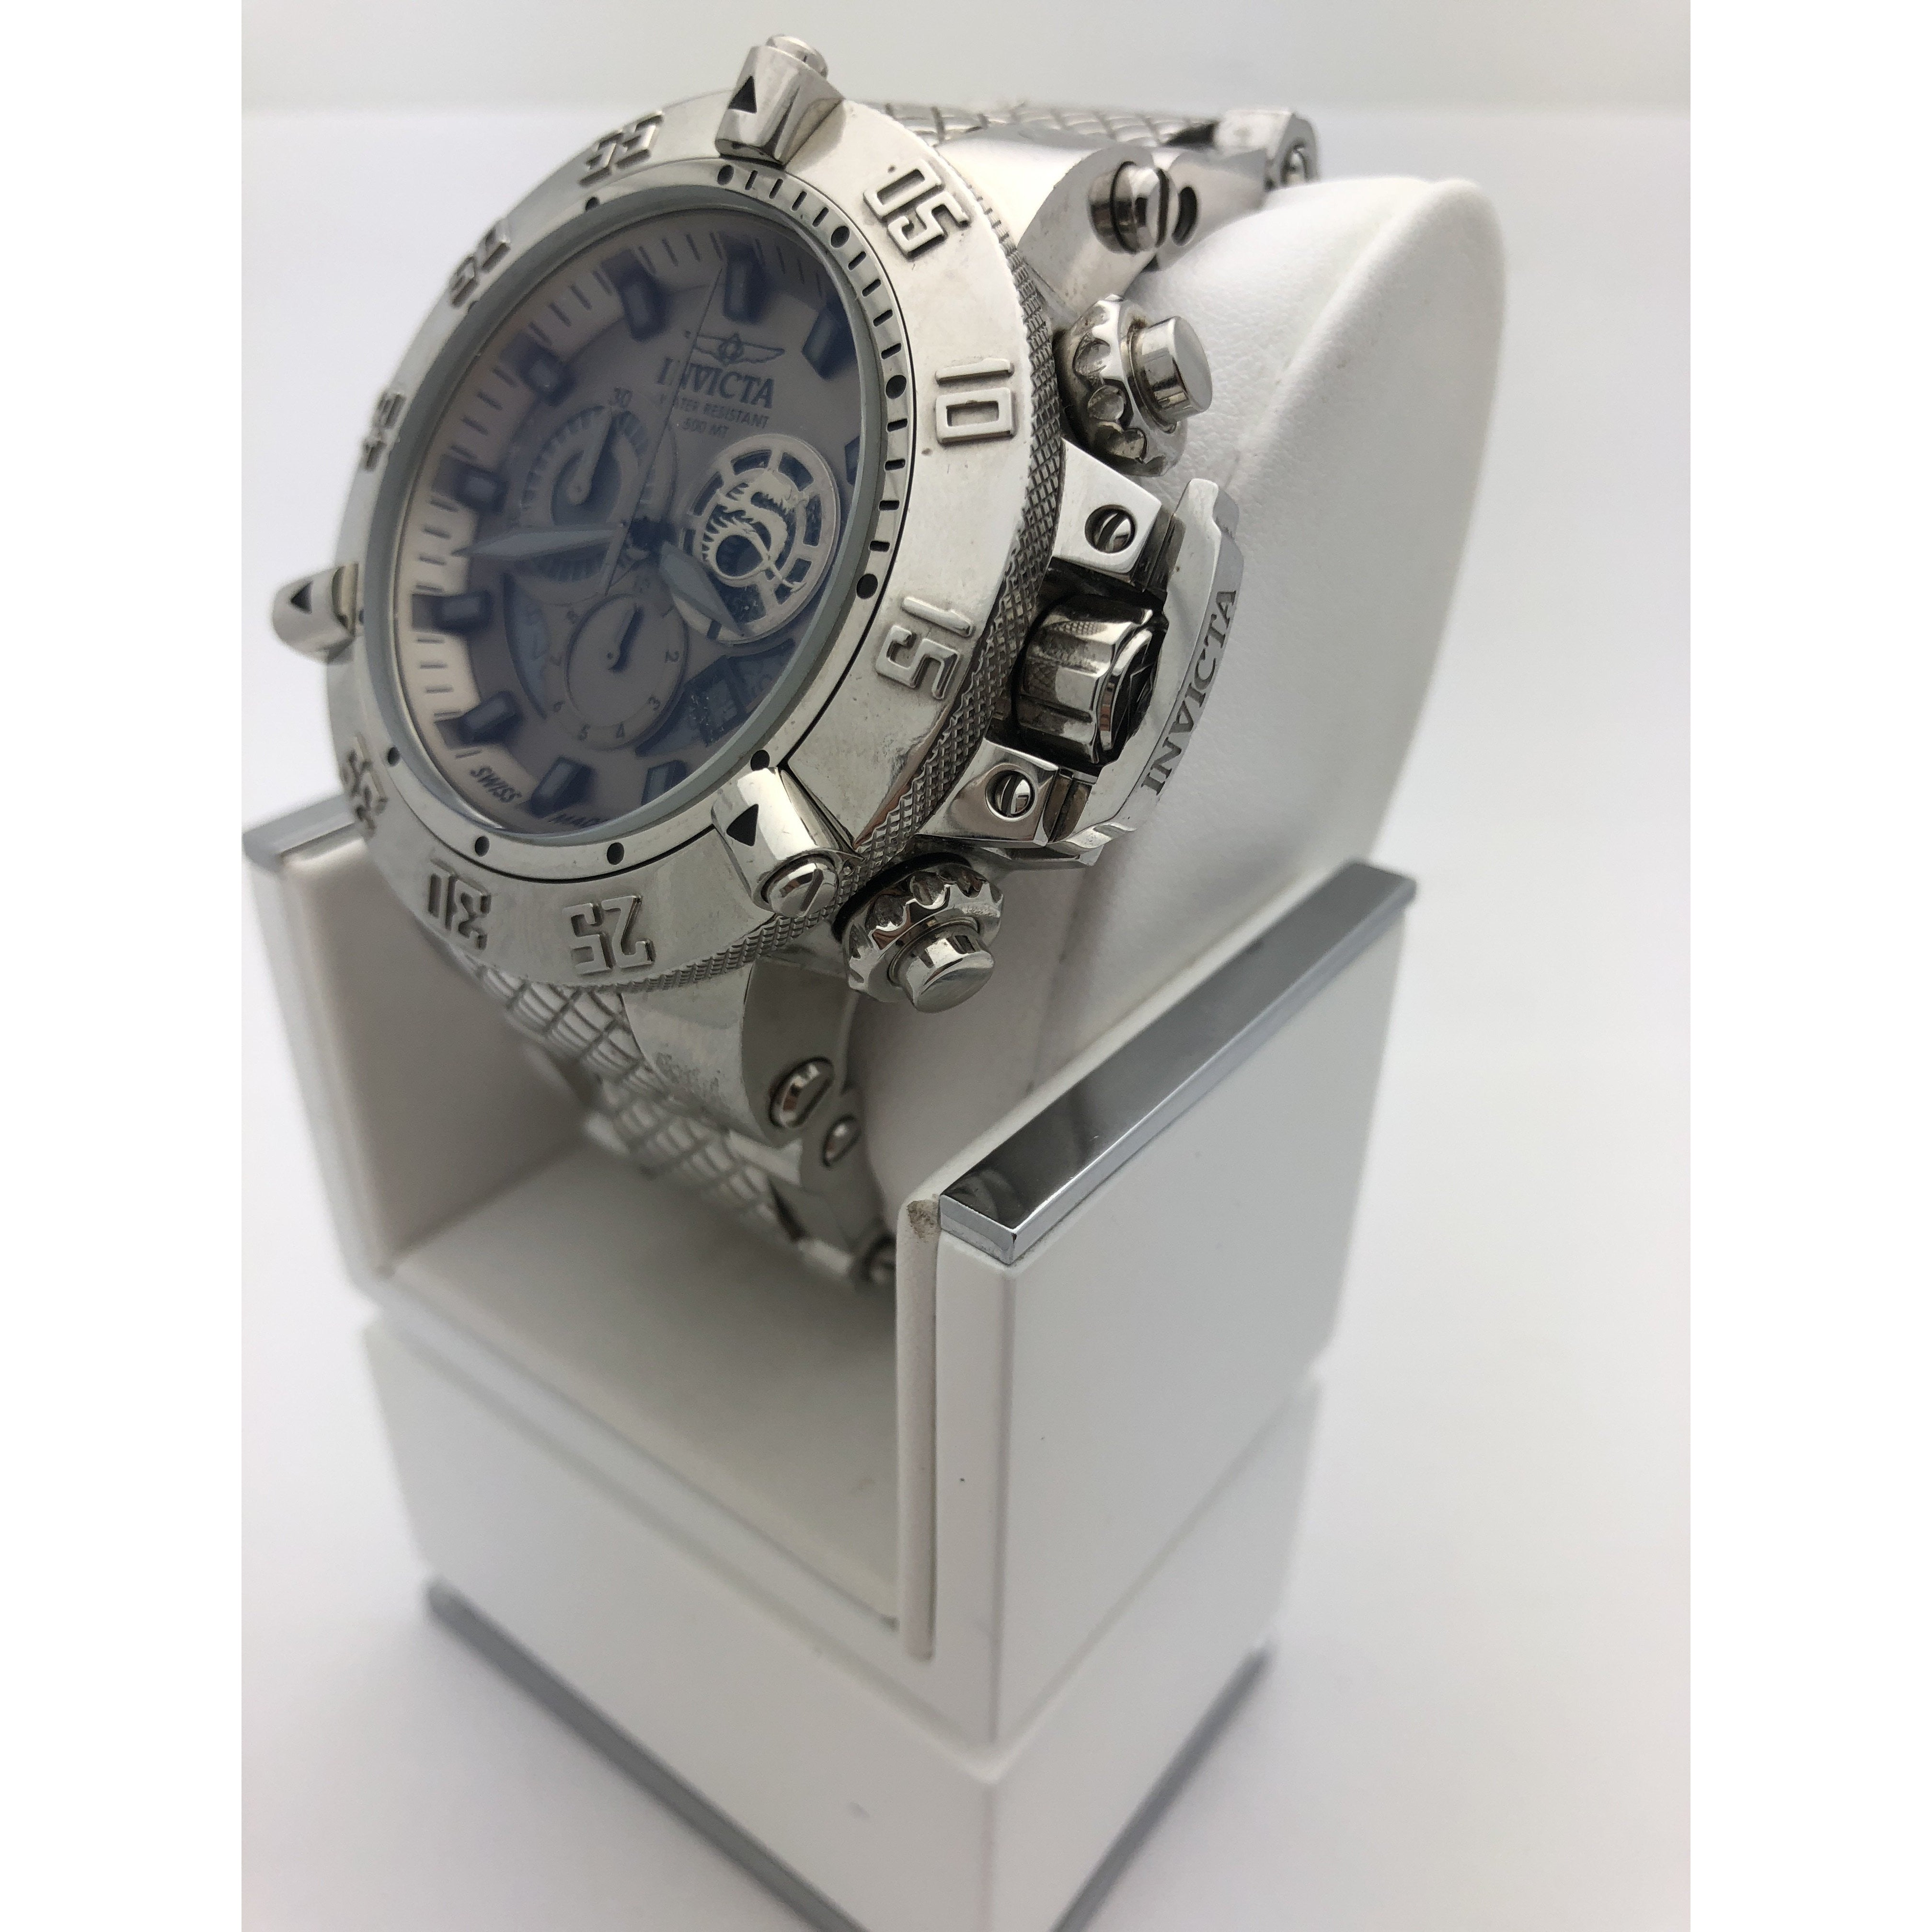 Invicta Men's Chronograph Grey Dial Silver Tone Stainless Steel Watch 11590